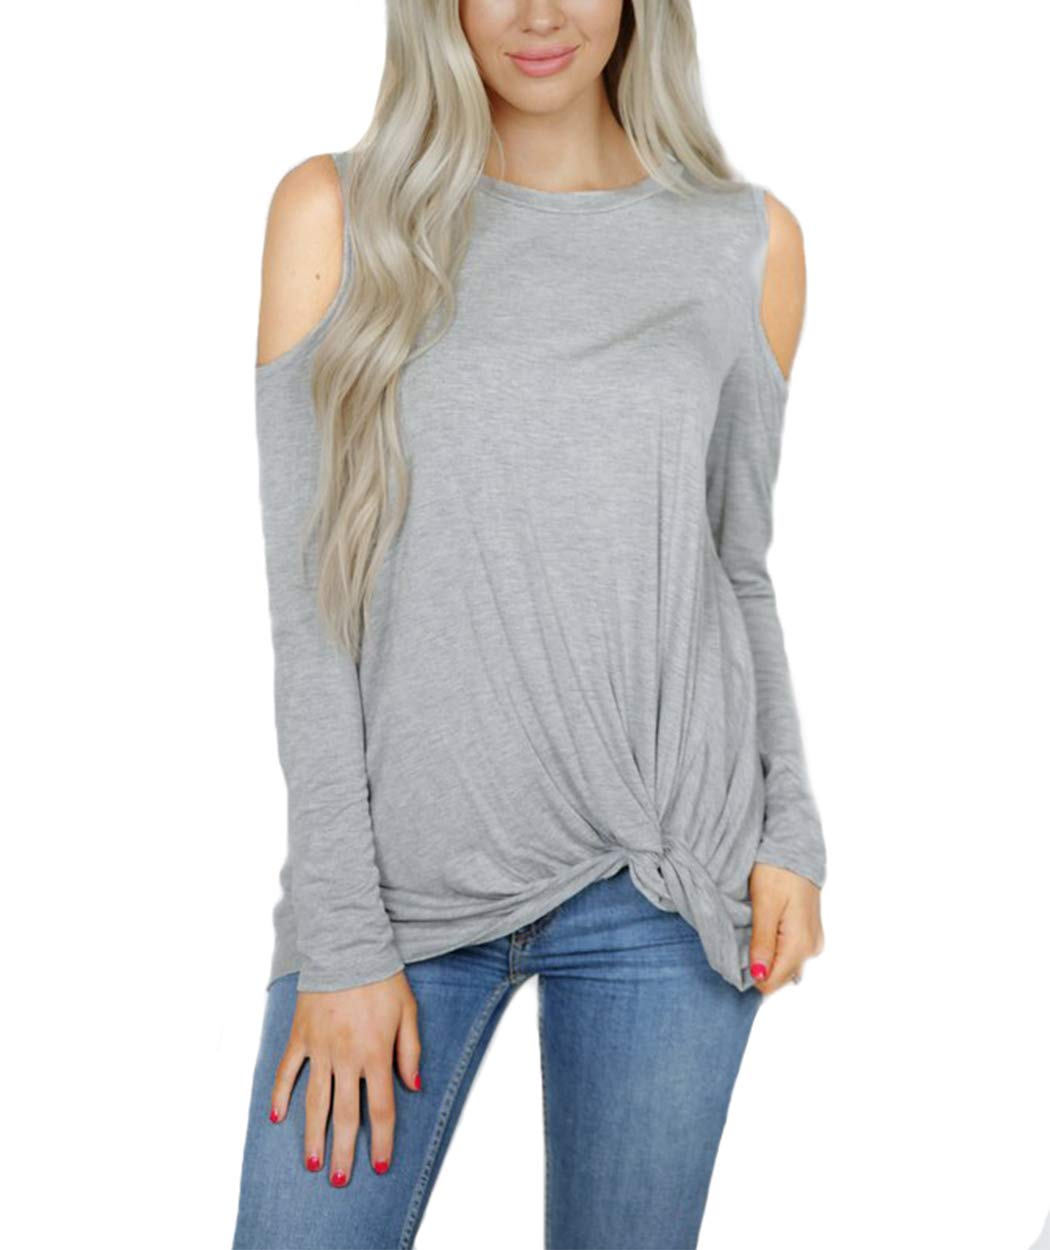 Eanklosco Womens Long Sleeve Cold Shoulder Cut Out T Shirts Casual Knot Tunic Tops (Grey, L)